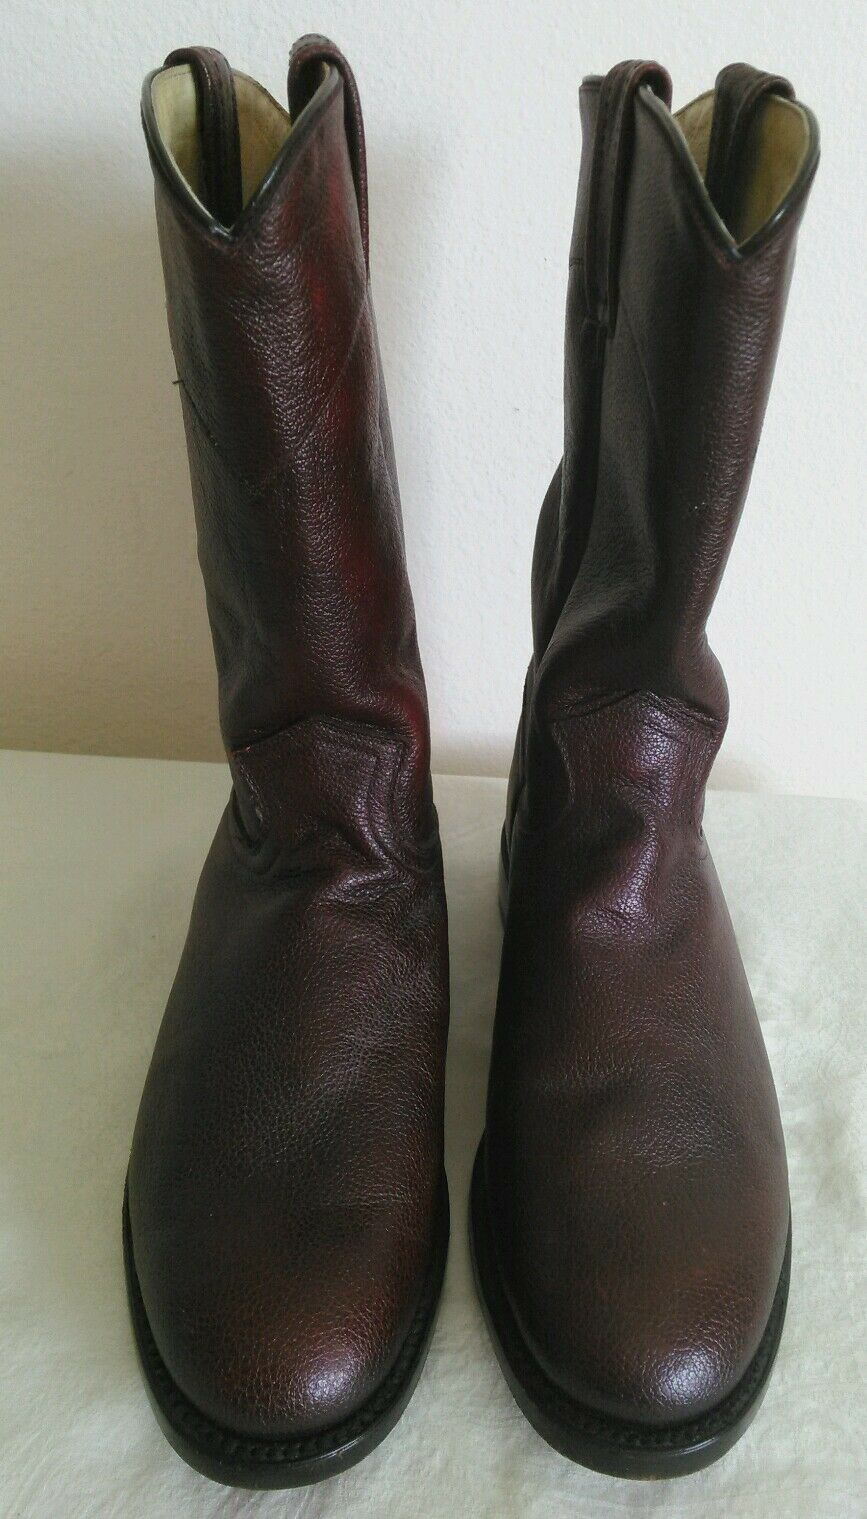 New DAN POST Women's Burgundy leather Western Roper Riding Boots Size 7.5 M